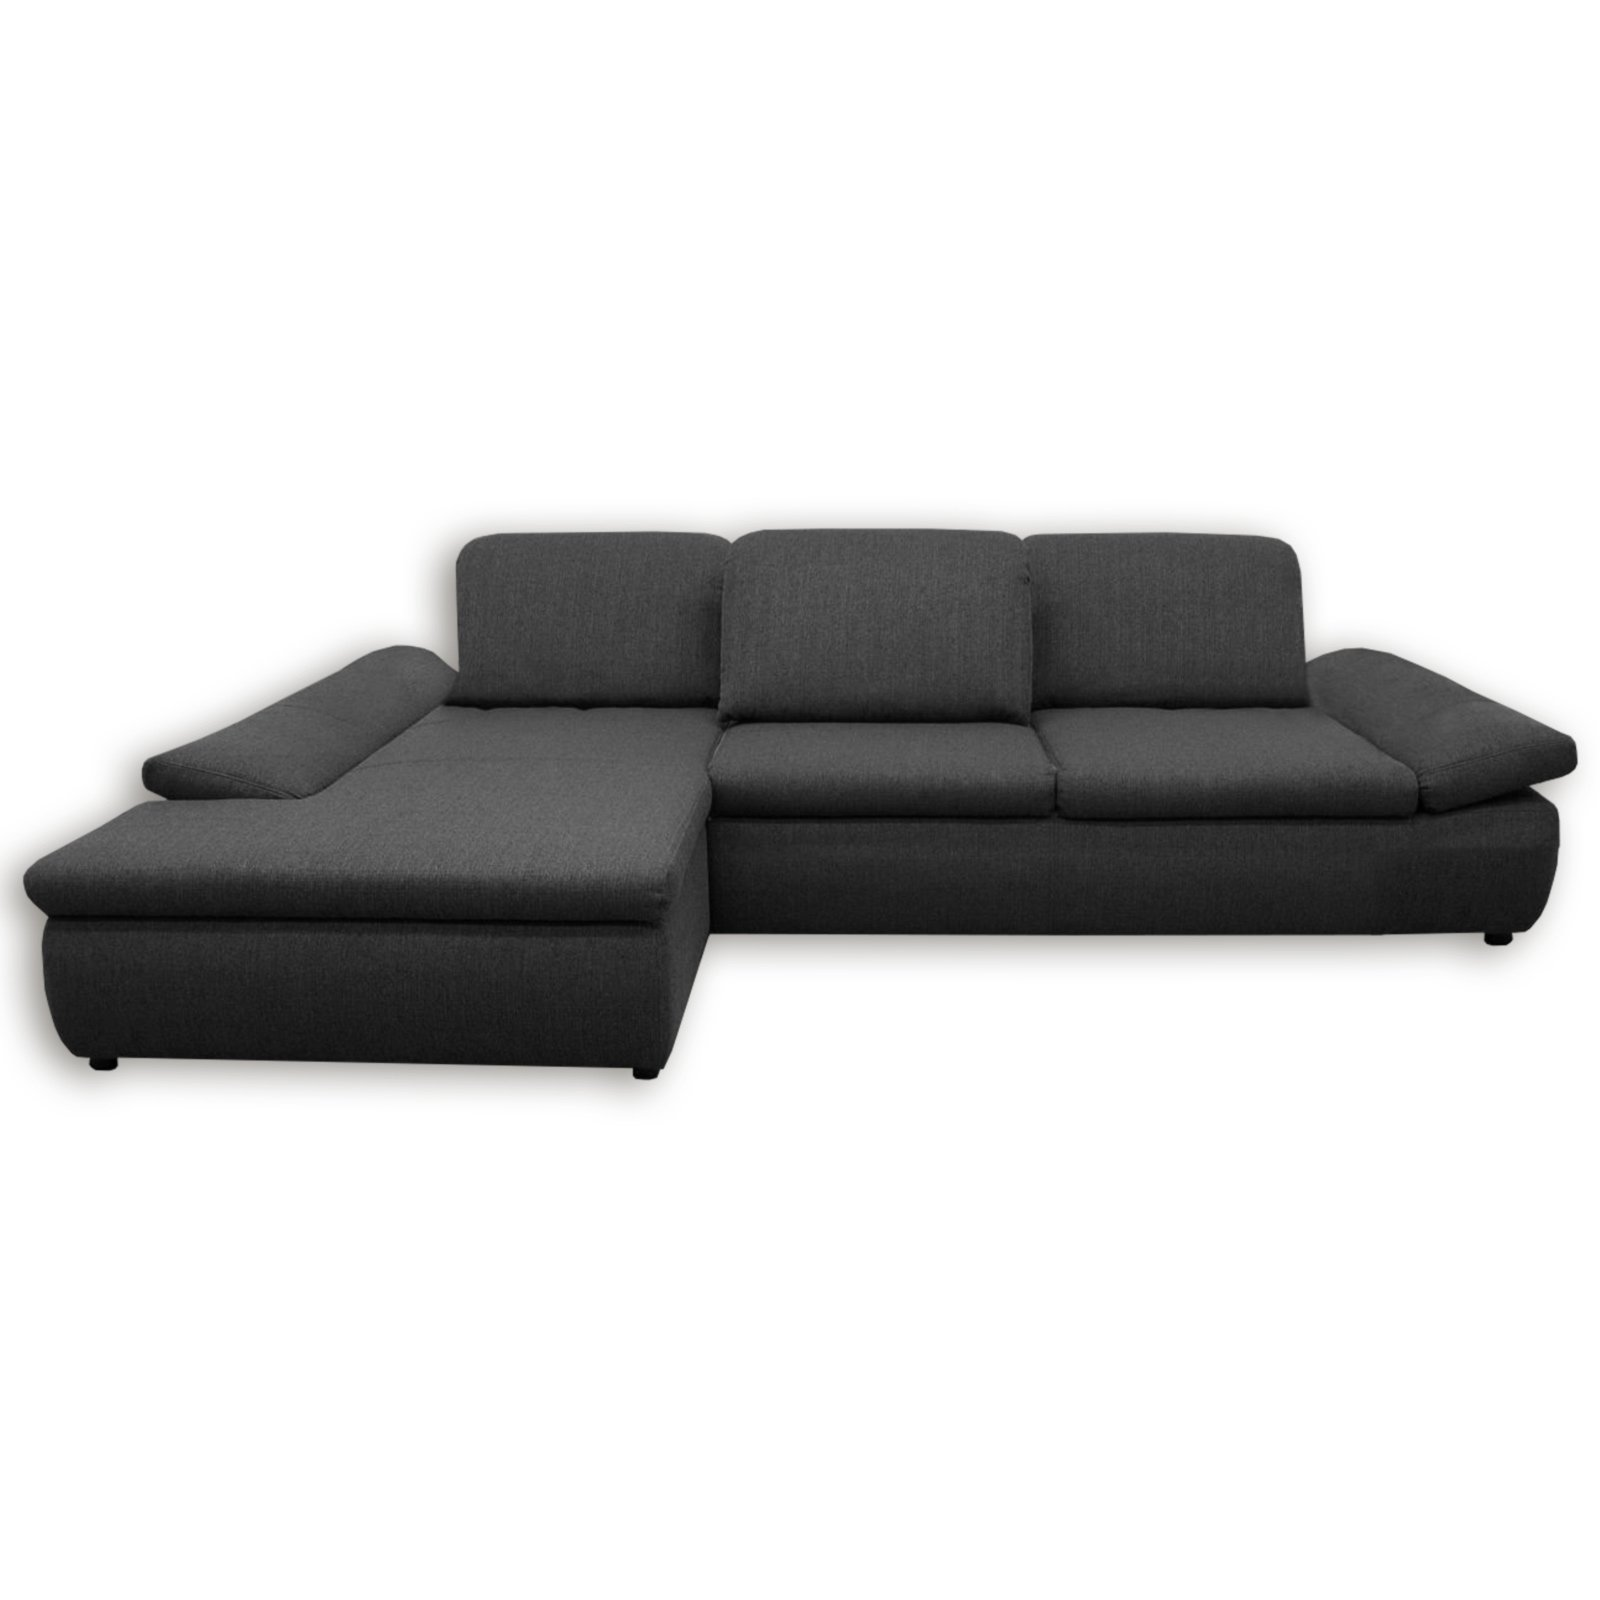 ecksofa dunkelgrau mit funktionen recamiere links ecksofas l form sofas couches. Black Bedroom Furniture Sets. Home Design Ideas